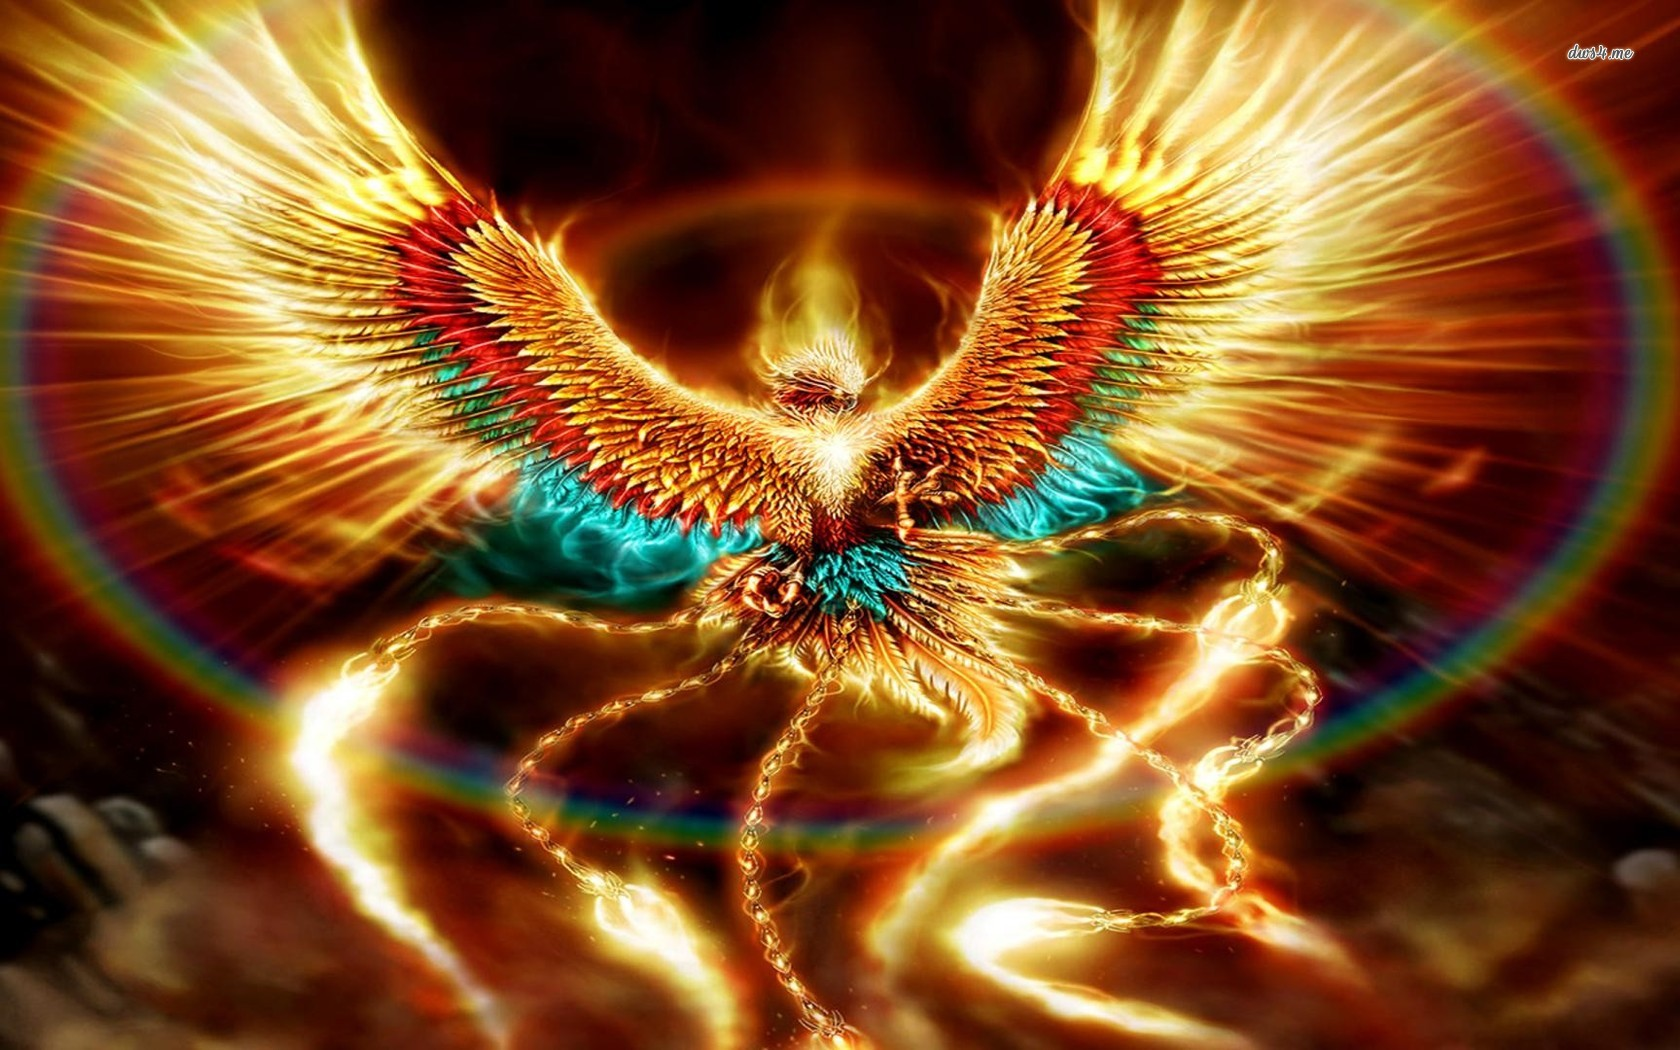 Fantasy Phoenix Wallpaper 37 Background Wallpaper   Hivewallpapercom 1680x1050